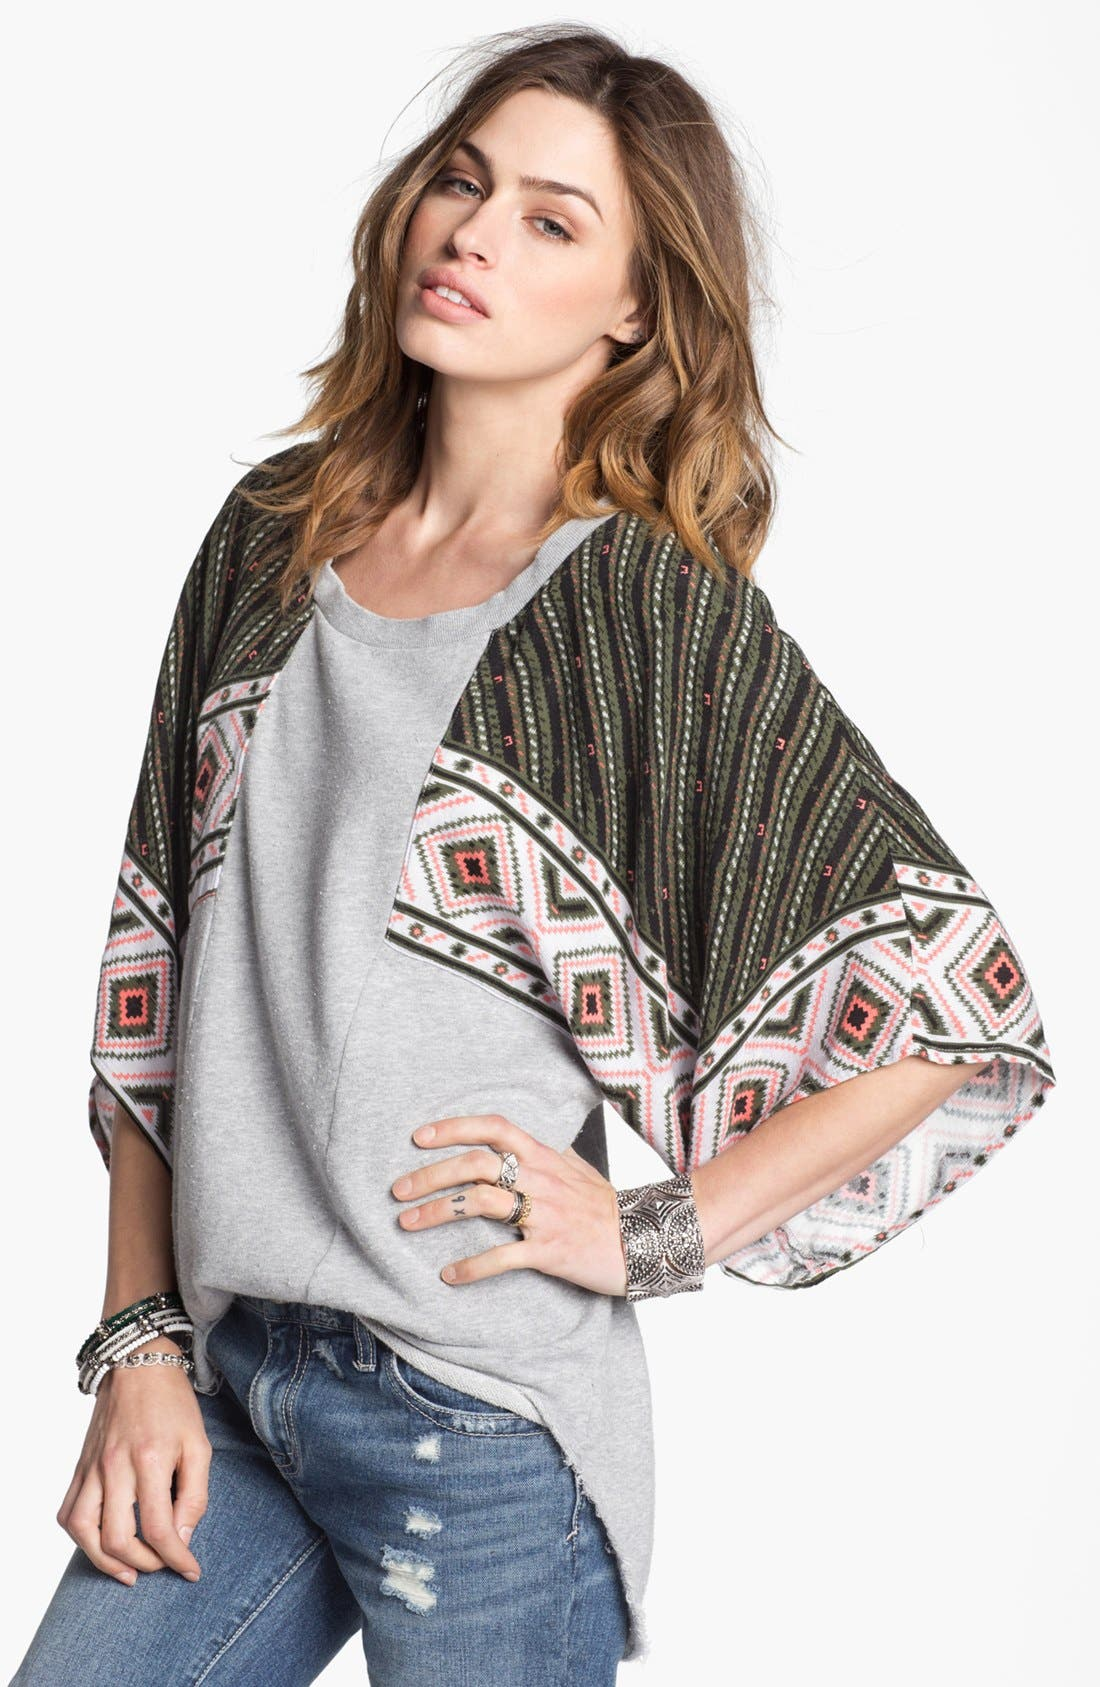 Main Image - Free People 'Festival' Mixed Media Sweatshirt